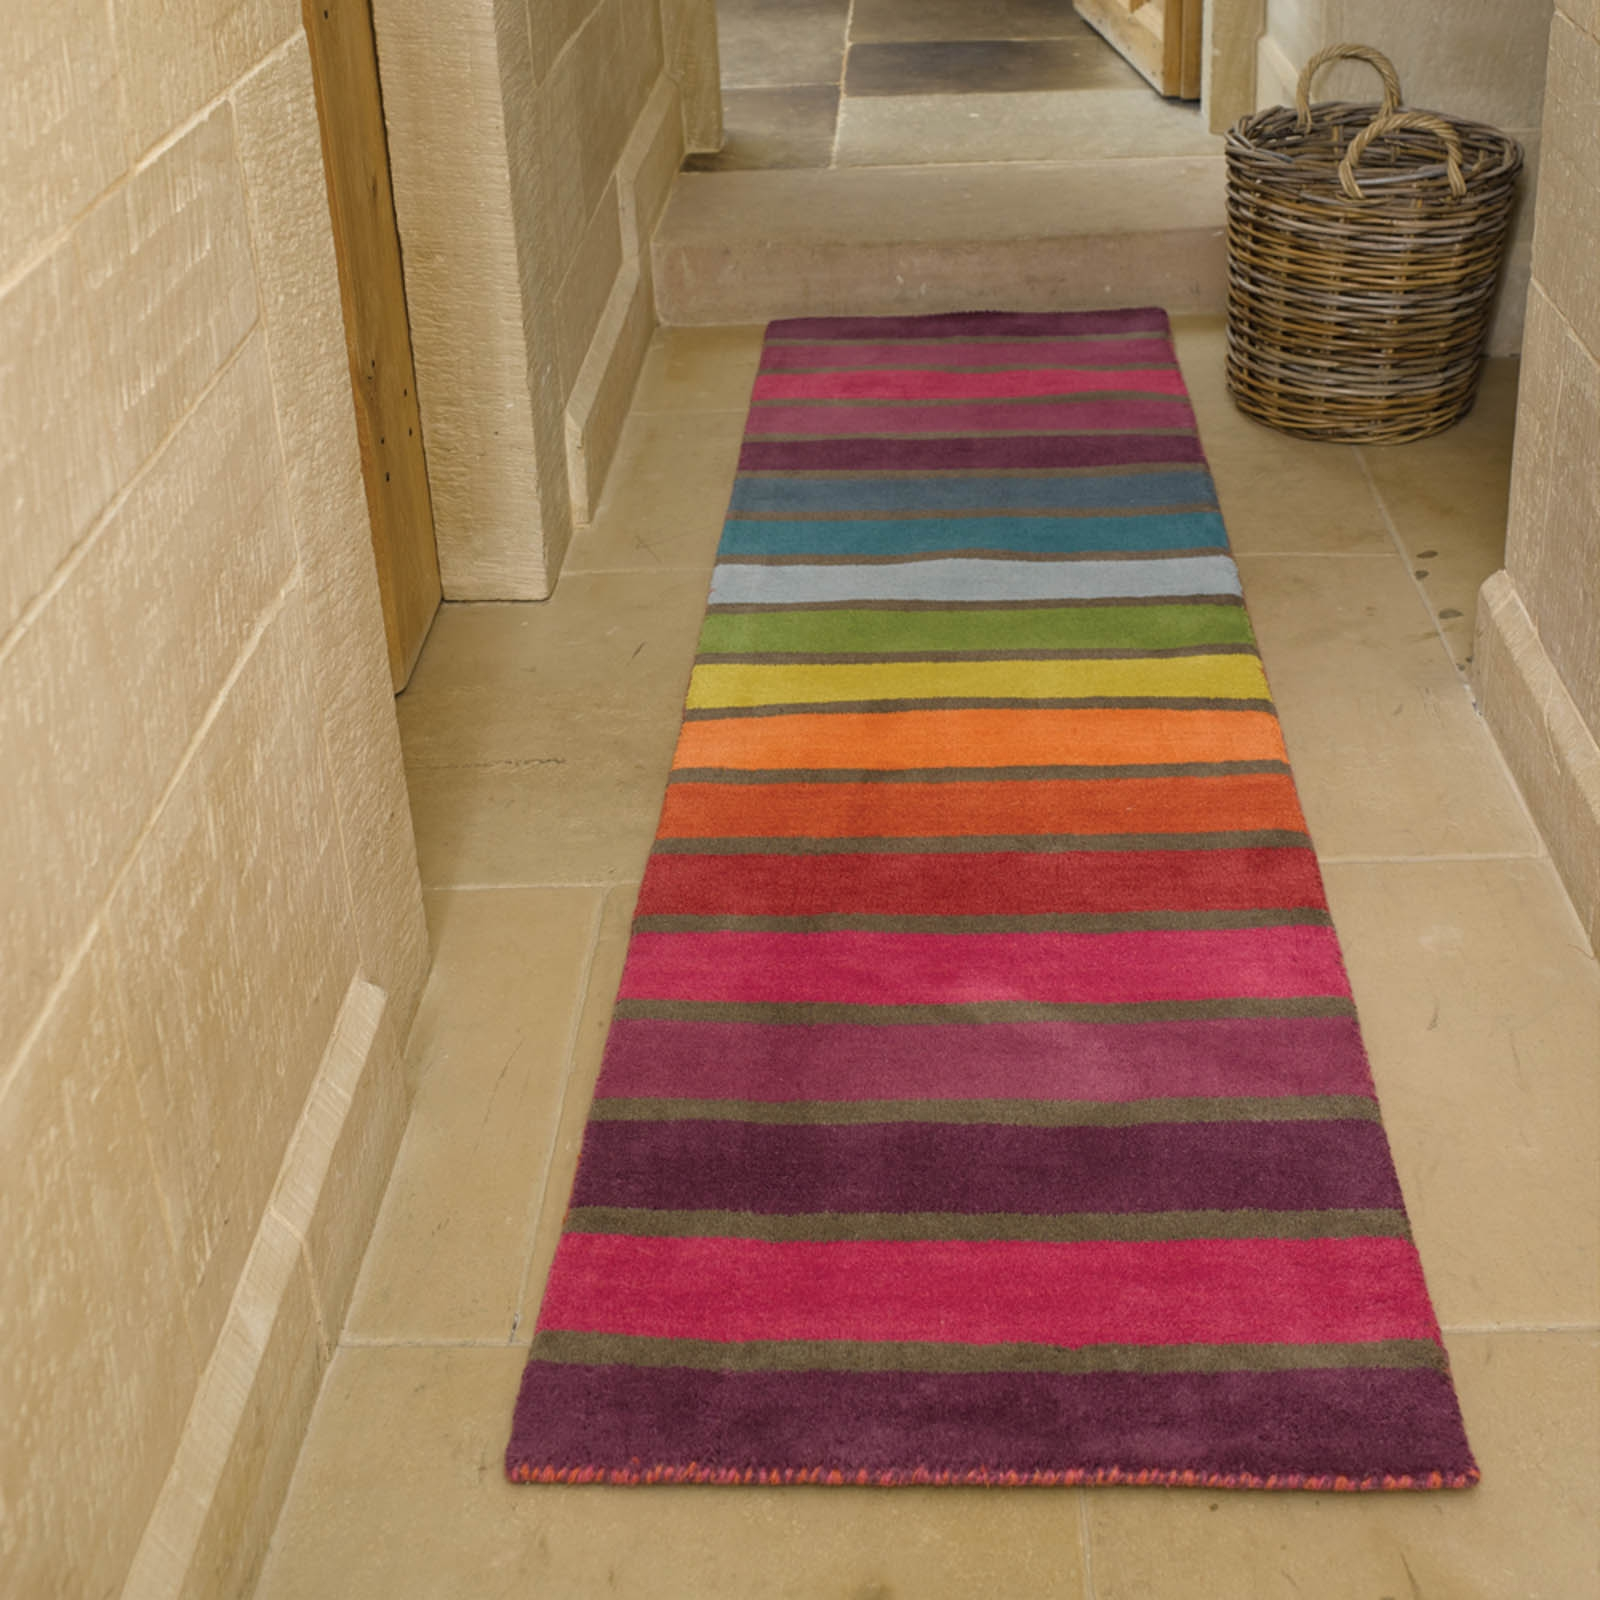 Hallway Runner Rugs Uk Roselawnlutheran With Regard To Wool Hall Runners (Image 8 of 15)